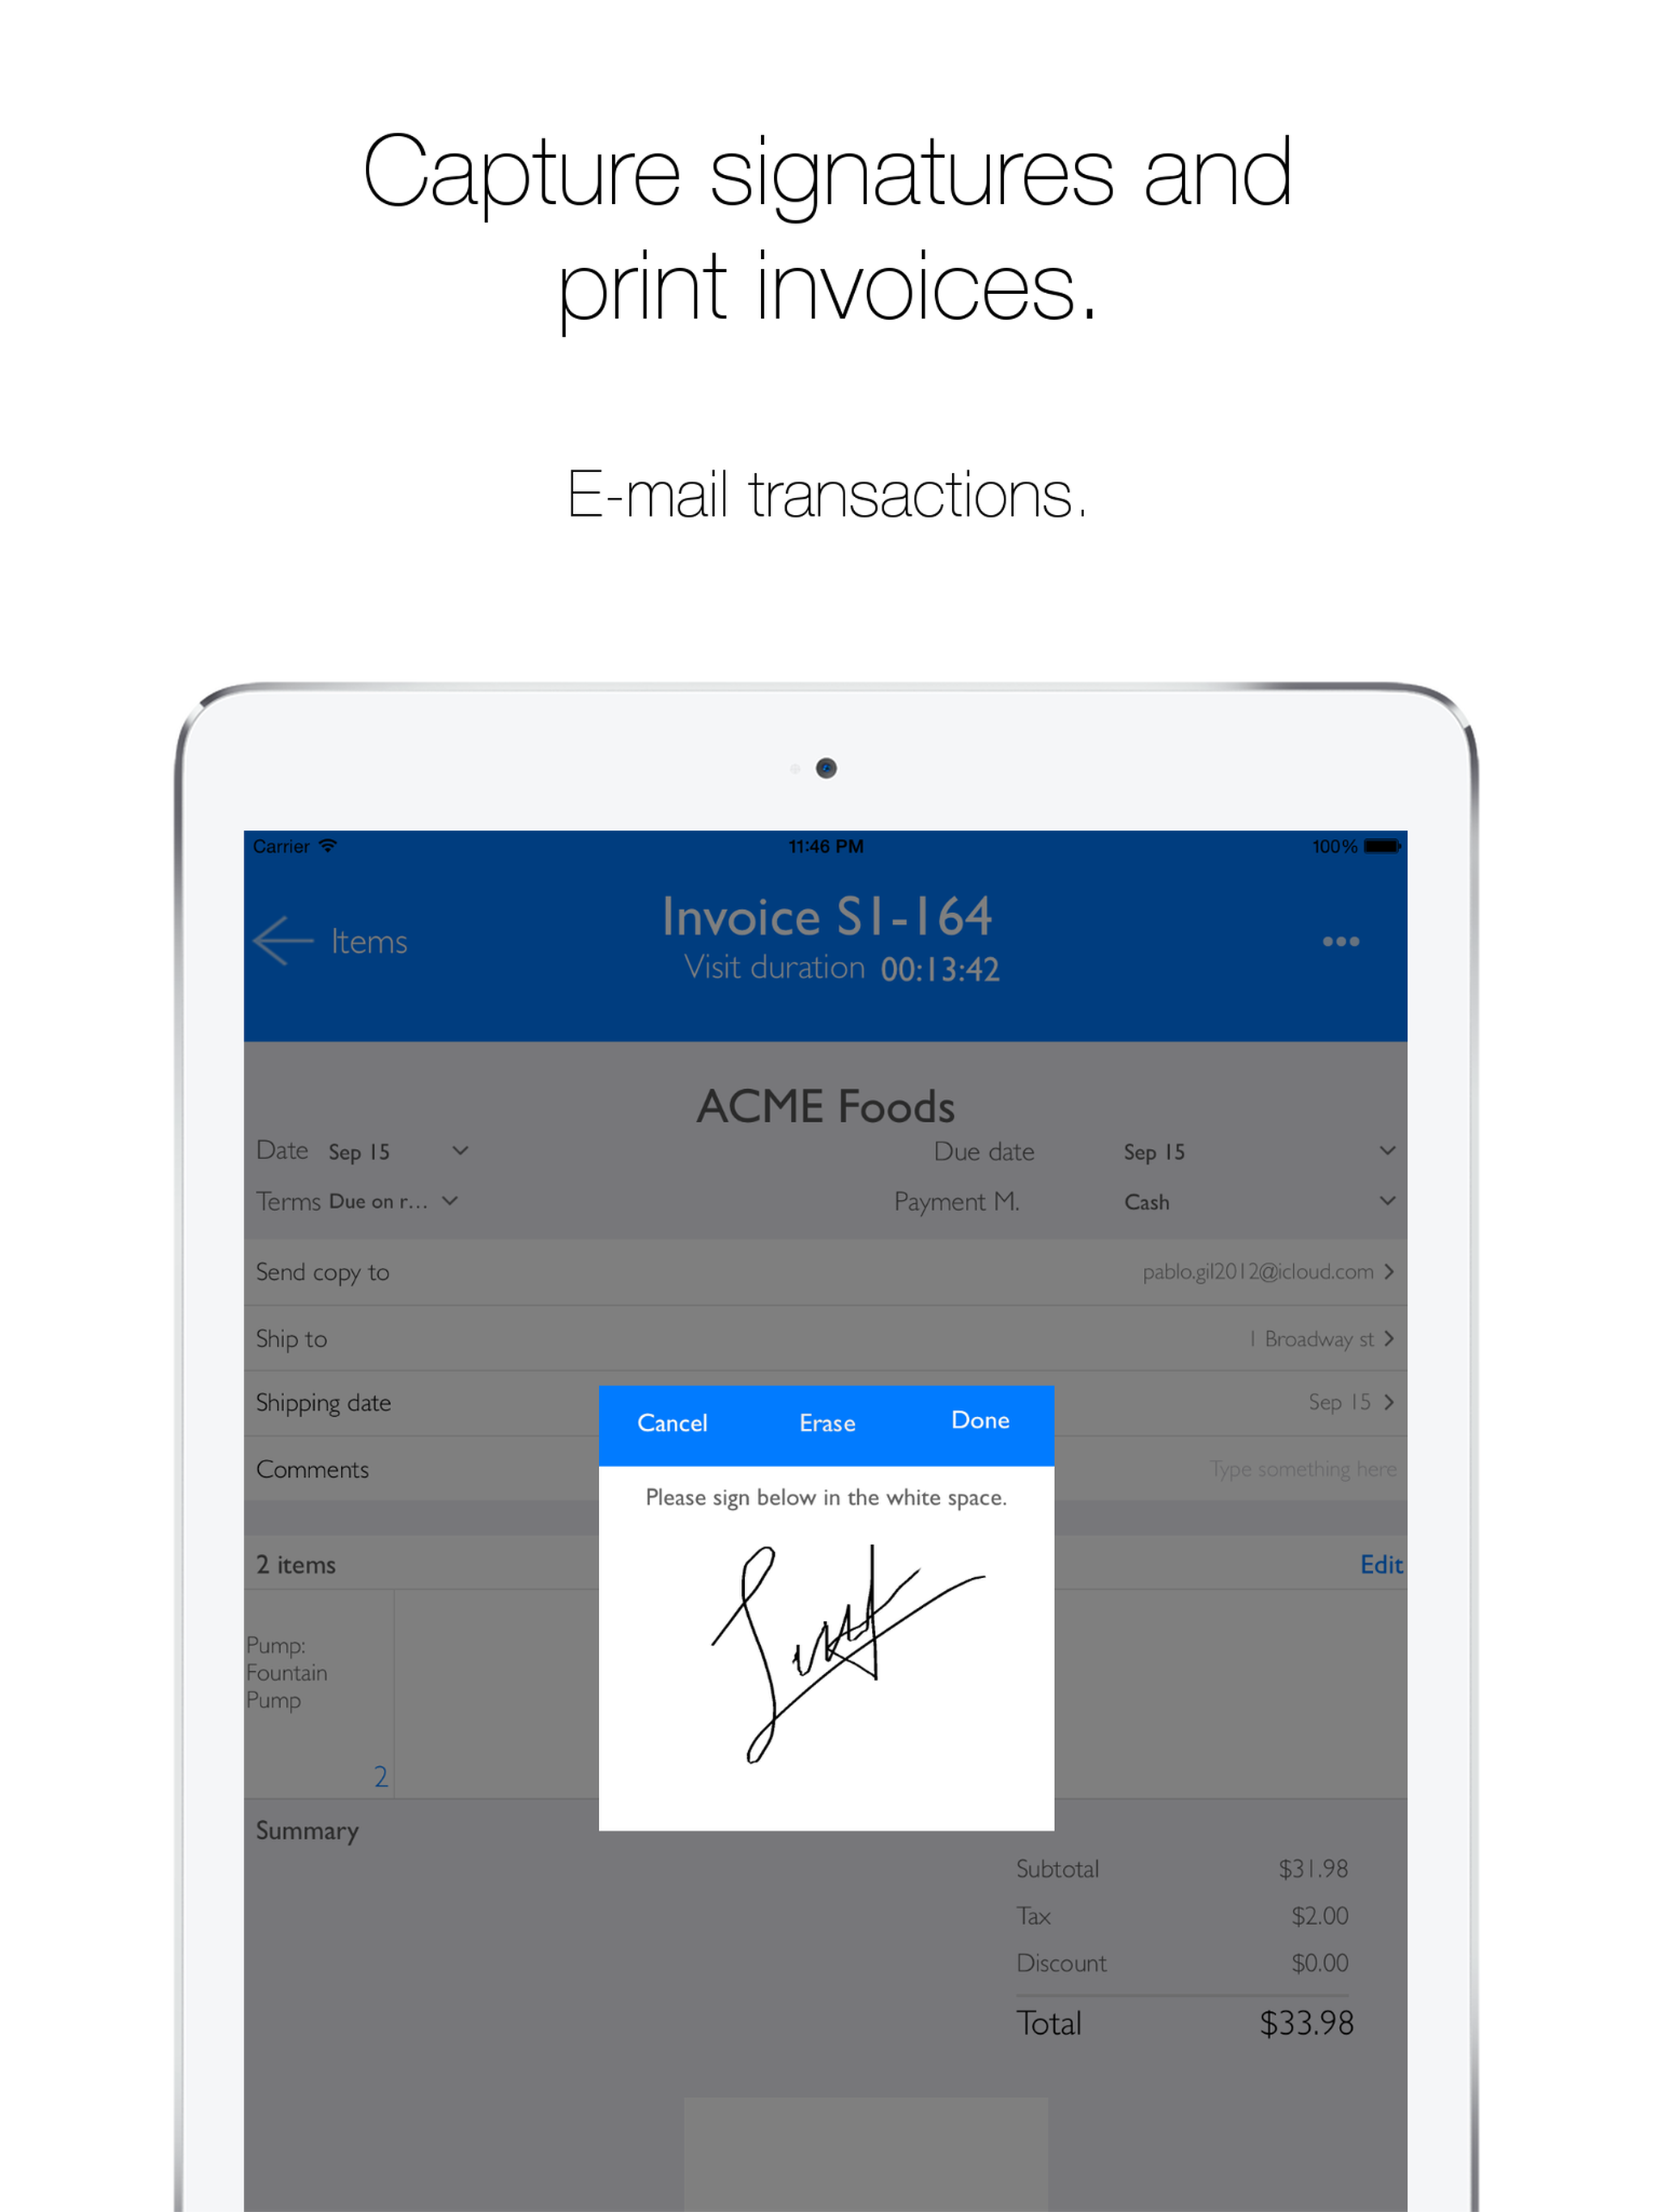 inSitu Sales: capture signatures and print invoices